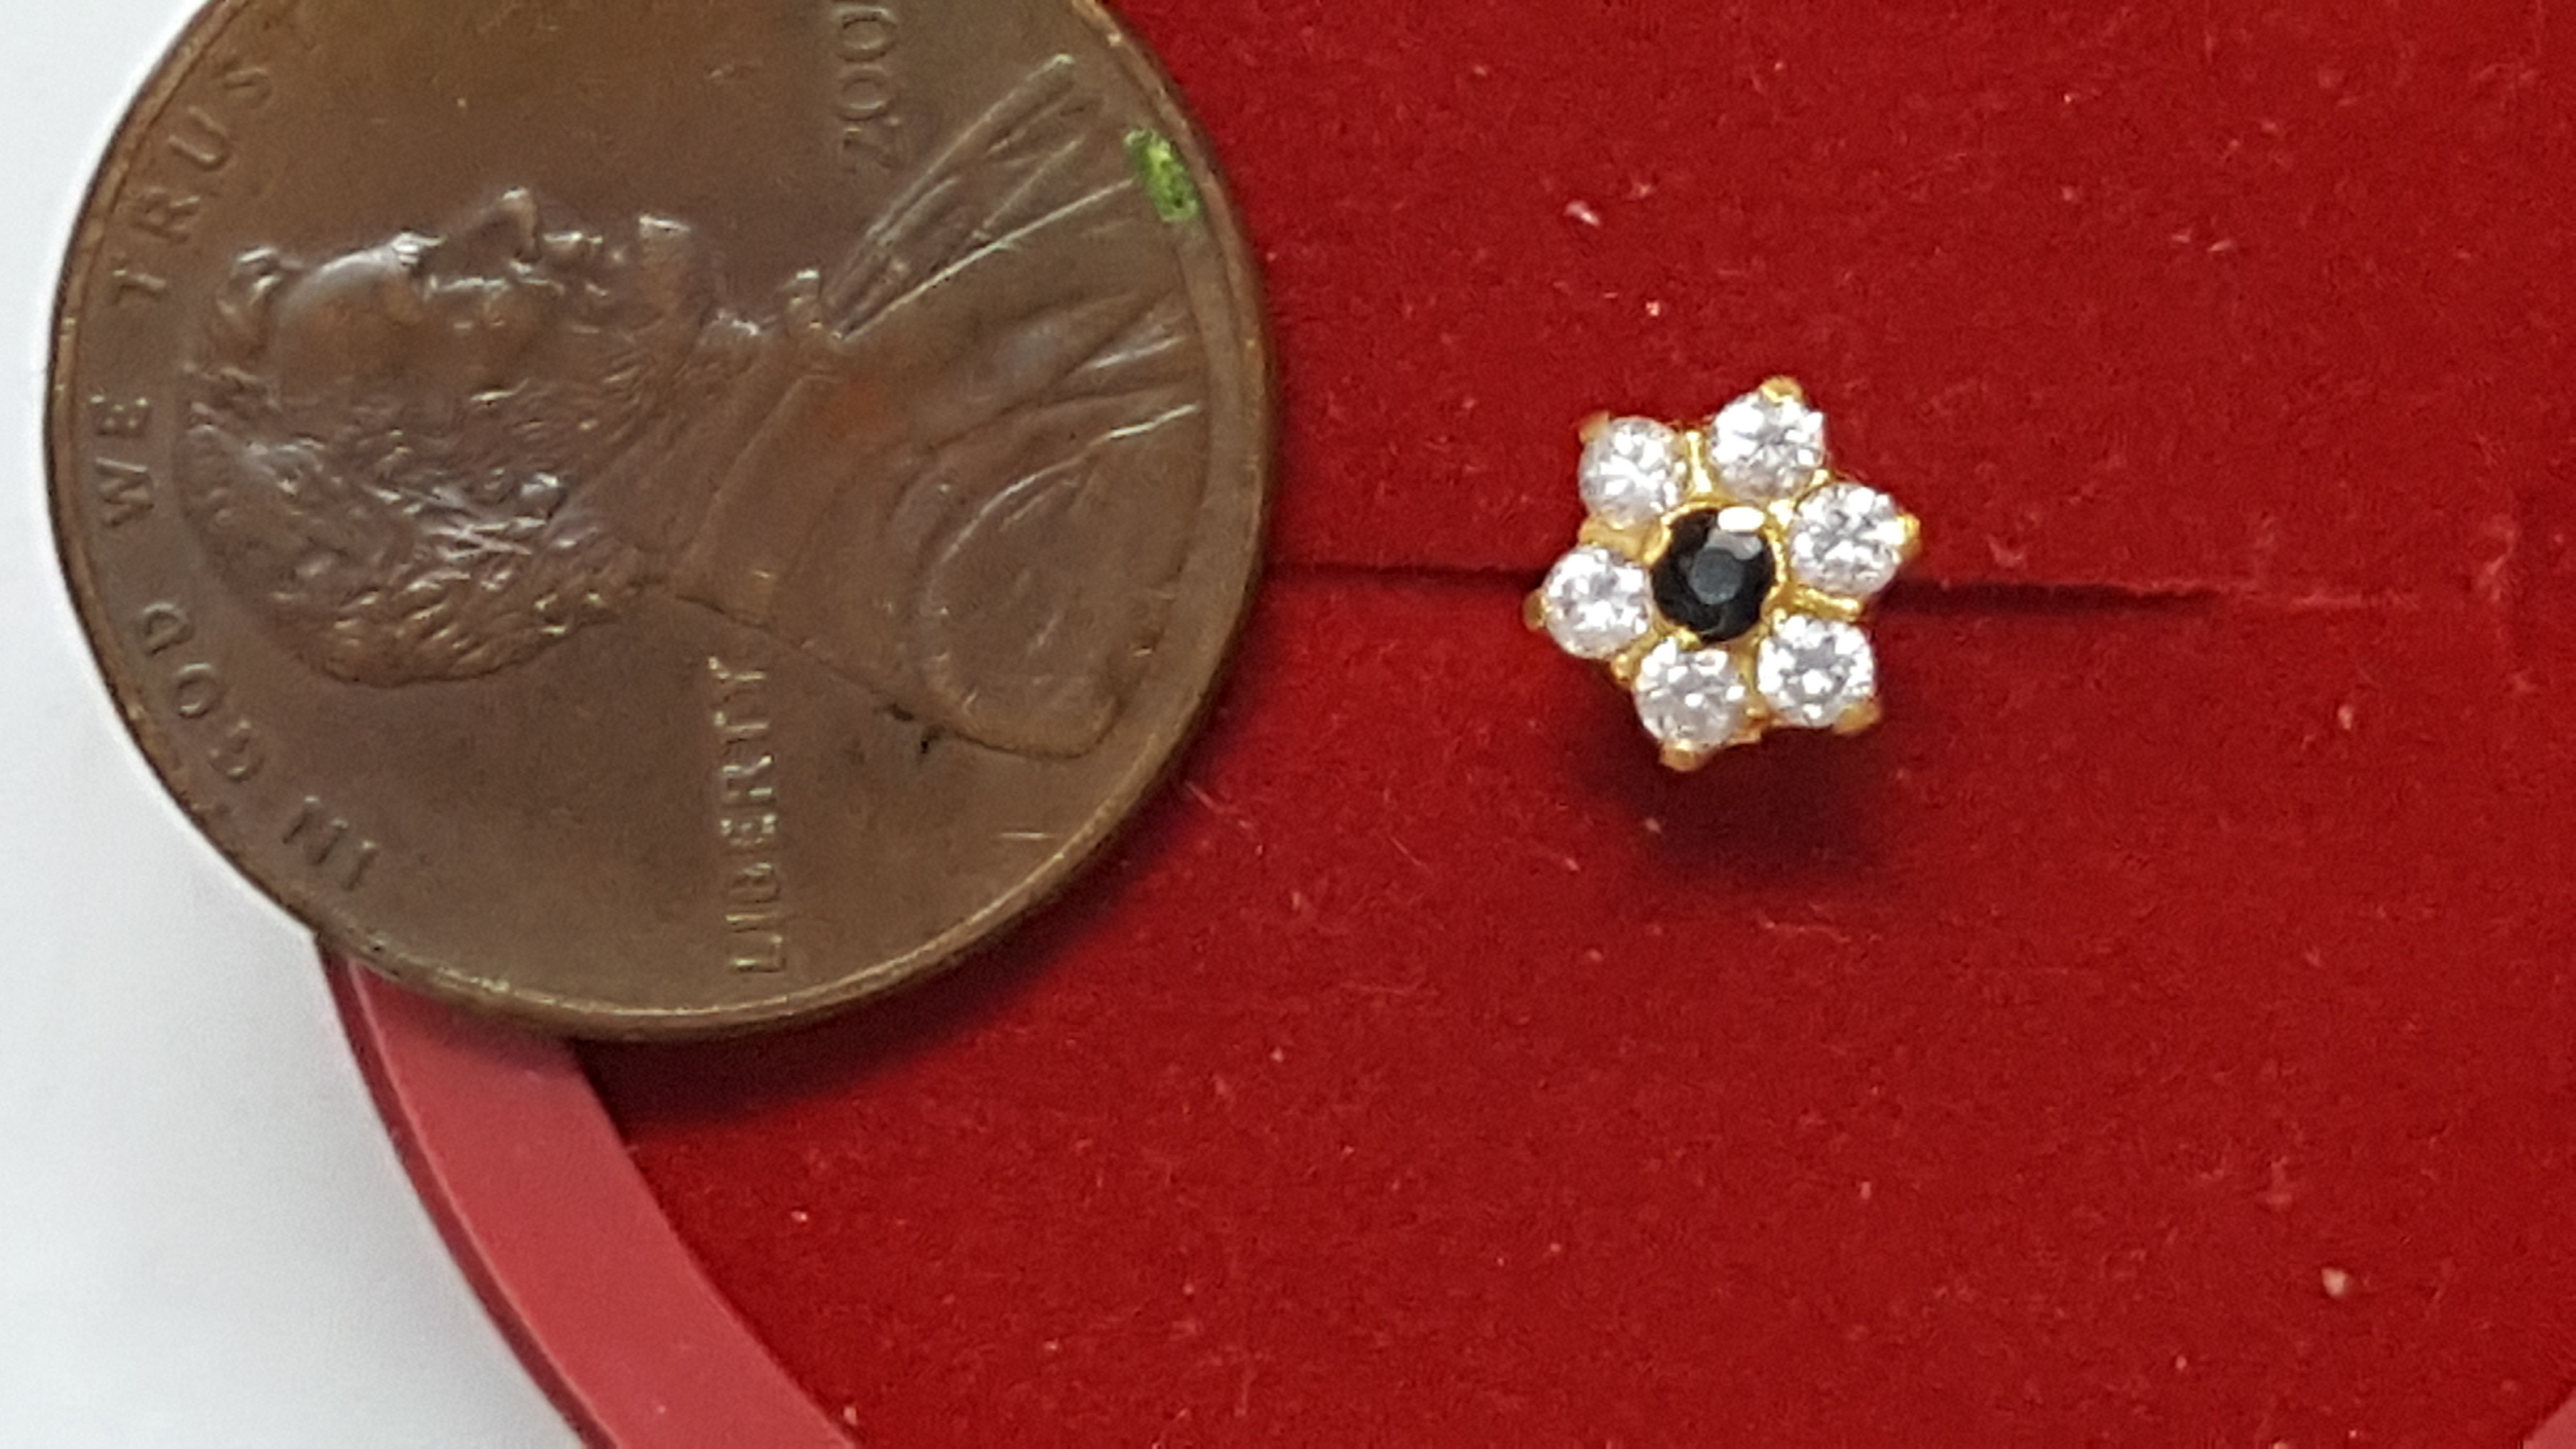 22k Gold Nose Pin Stud Ring 6 White 1 Black Stone Combined